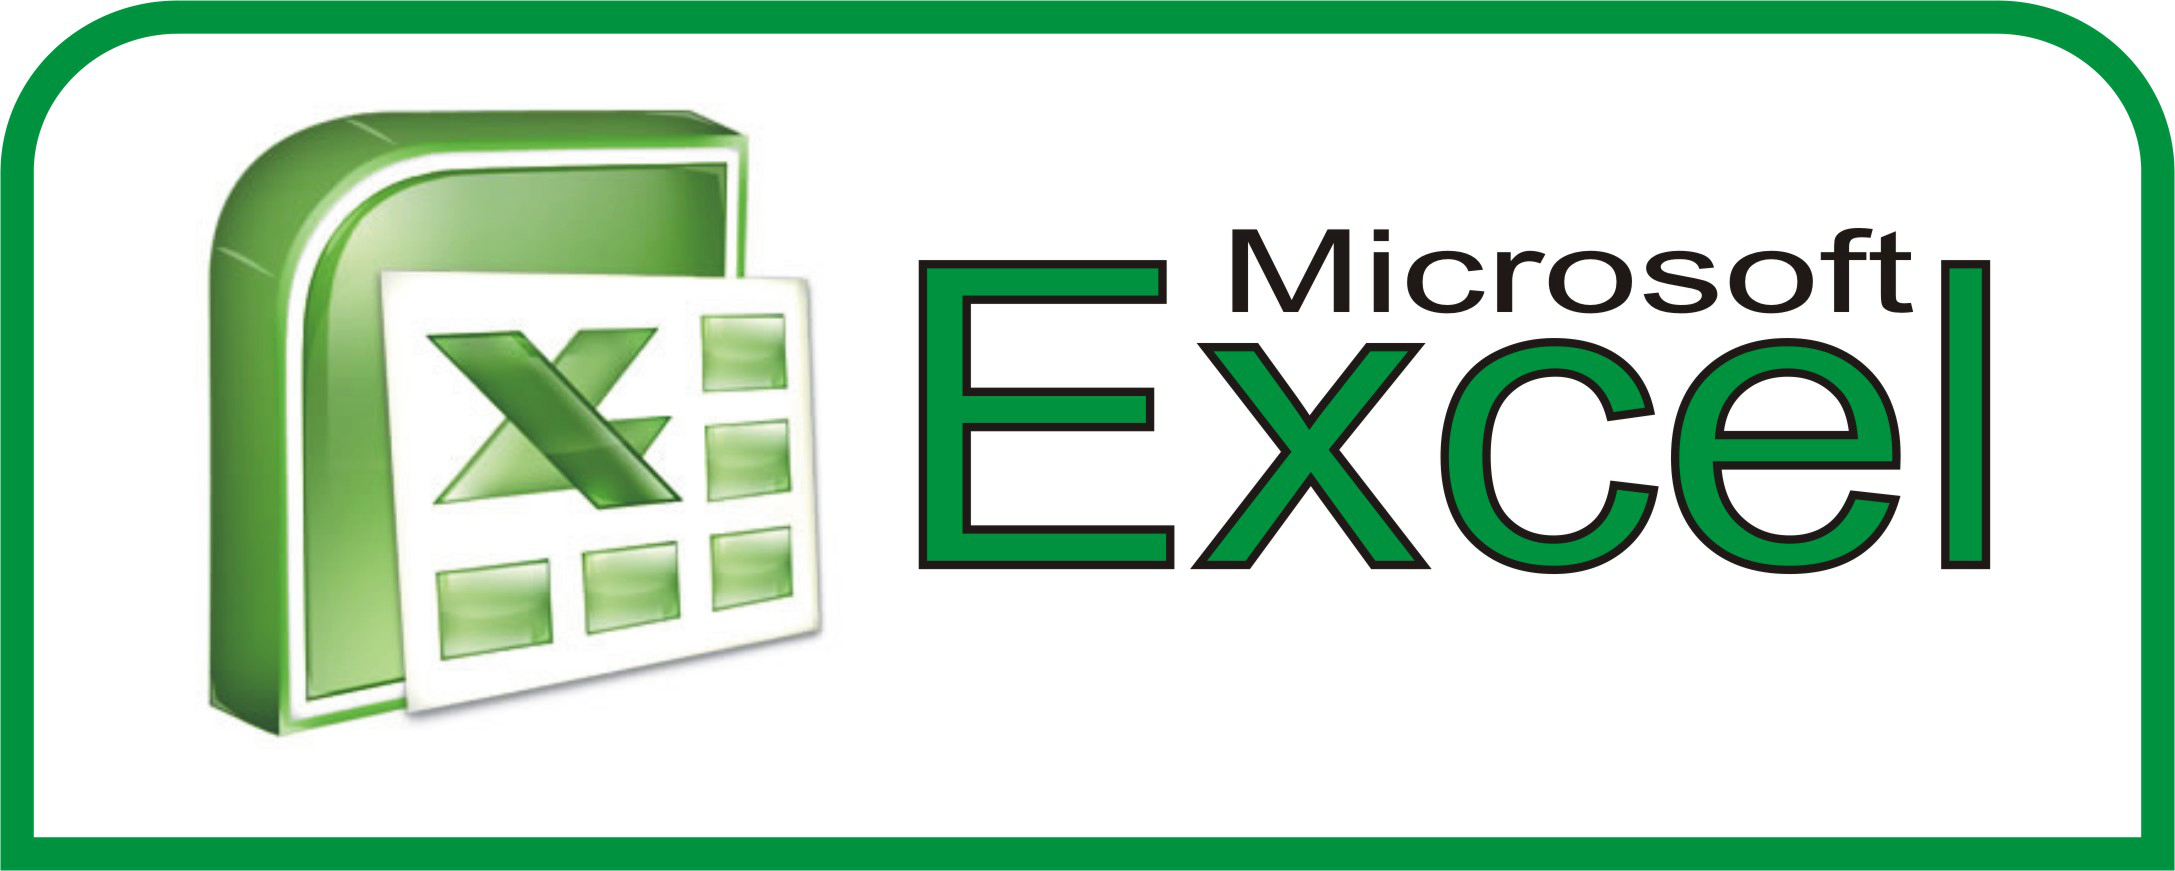 Ediblewildsus  Seductive  Excel Shortcuts You Probably Didnt Know About  Techdissected With Magnificent Attendance Tracker Excel Besides Excel Game Furthermore How To Group Sheets In Excel With Astounding How To Make Pivot Tables In Excel Also Matrix Excel In Addition Printing From Excel And Excel  Conditional Formatting As Well As Microsft Excel Additionally Regex Excel From Techdissectedcom With Ediblewildsus  Magnificent  Excel Shortcuts You Probably Didnt Know About  Techdissected With Astounding Attendance Tracker Excel Besides Excel Game Furthermore How To Group Sheets In Excel And Seductive How To Make Pivot Tables In Excel Also Matrix Excel In Addition Printing From Excel From Techdissectedcom